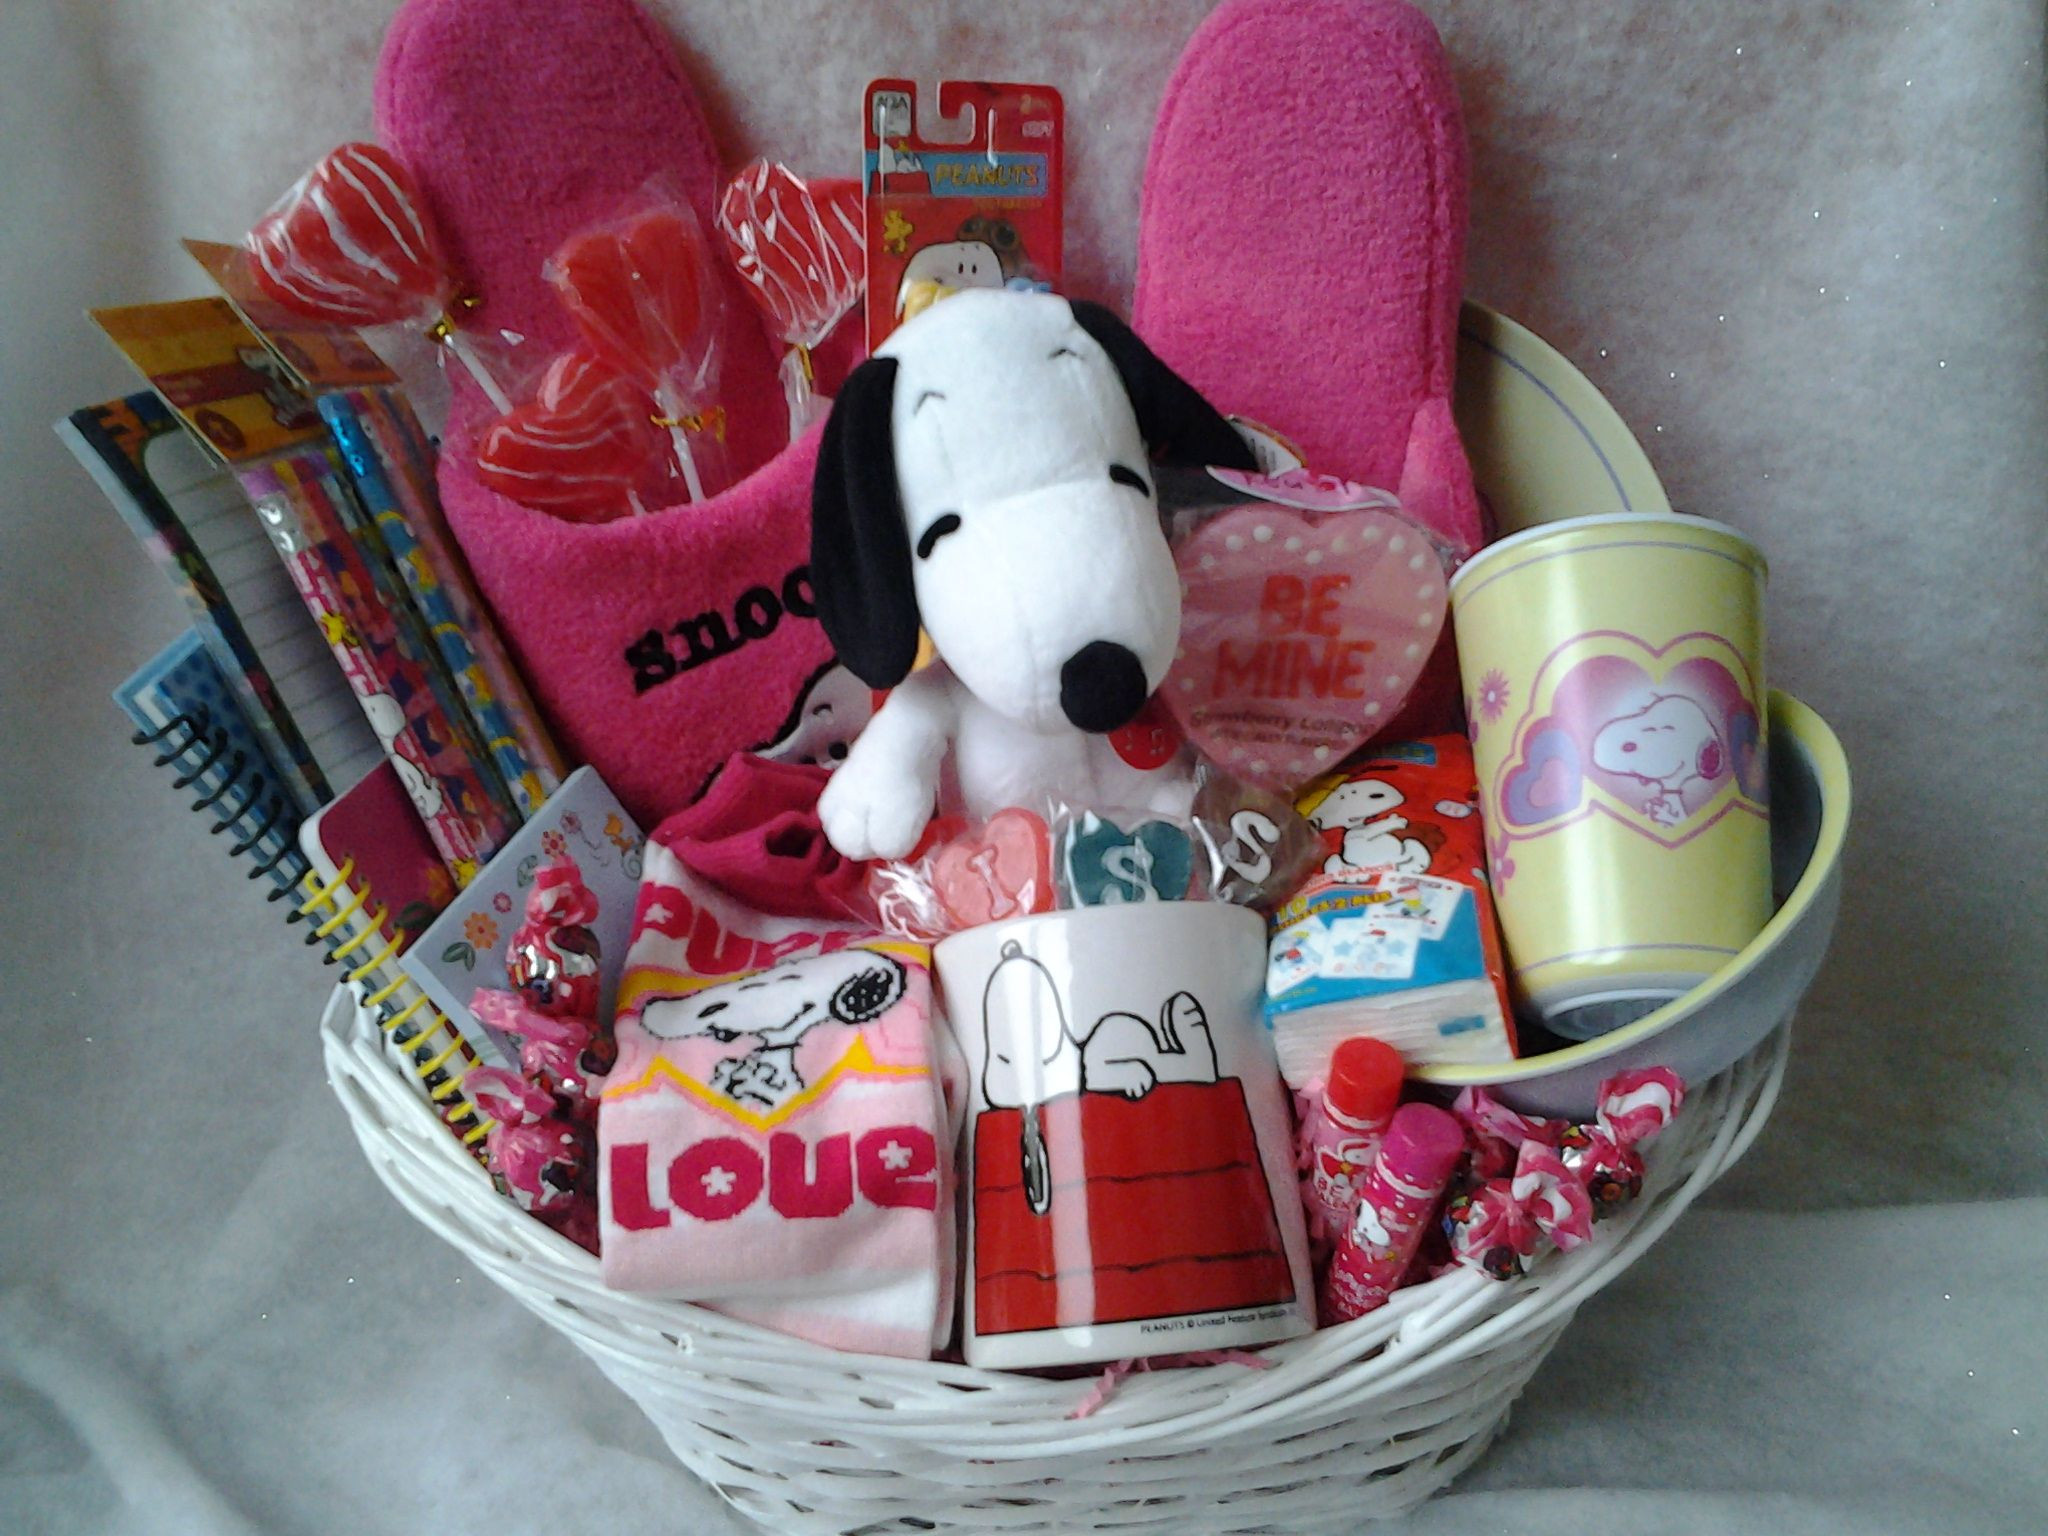 Best ideas about Snoopy Gift Ideas . Save or Pin snoopy t basket Snoopy Pinterest Now.